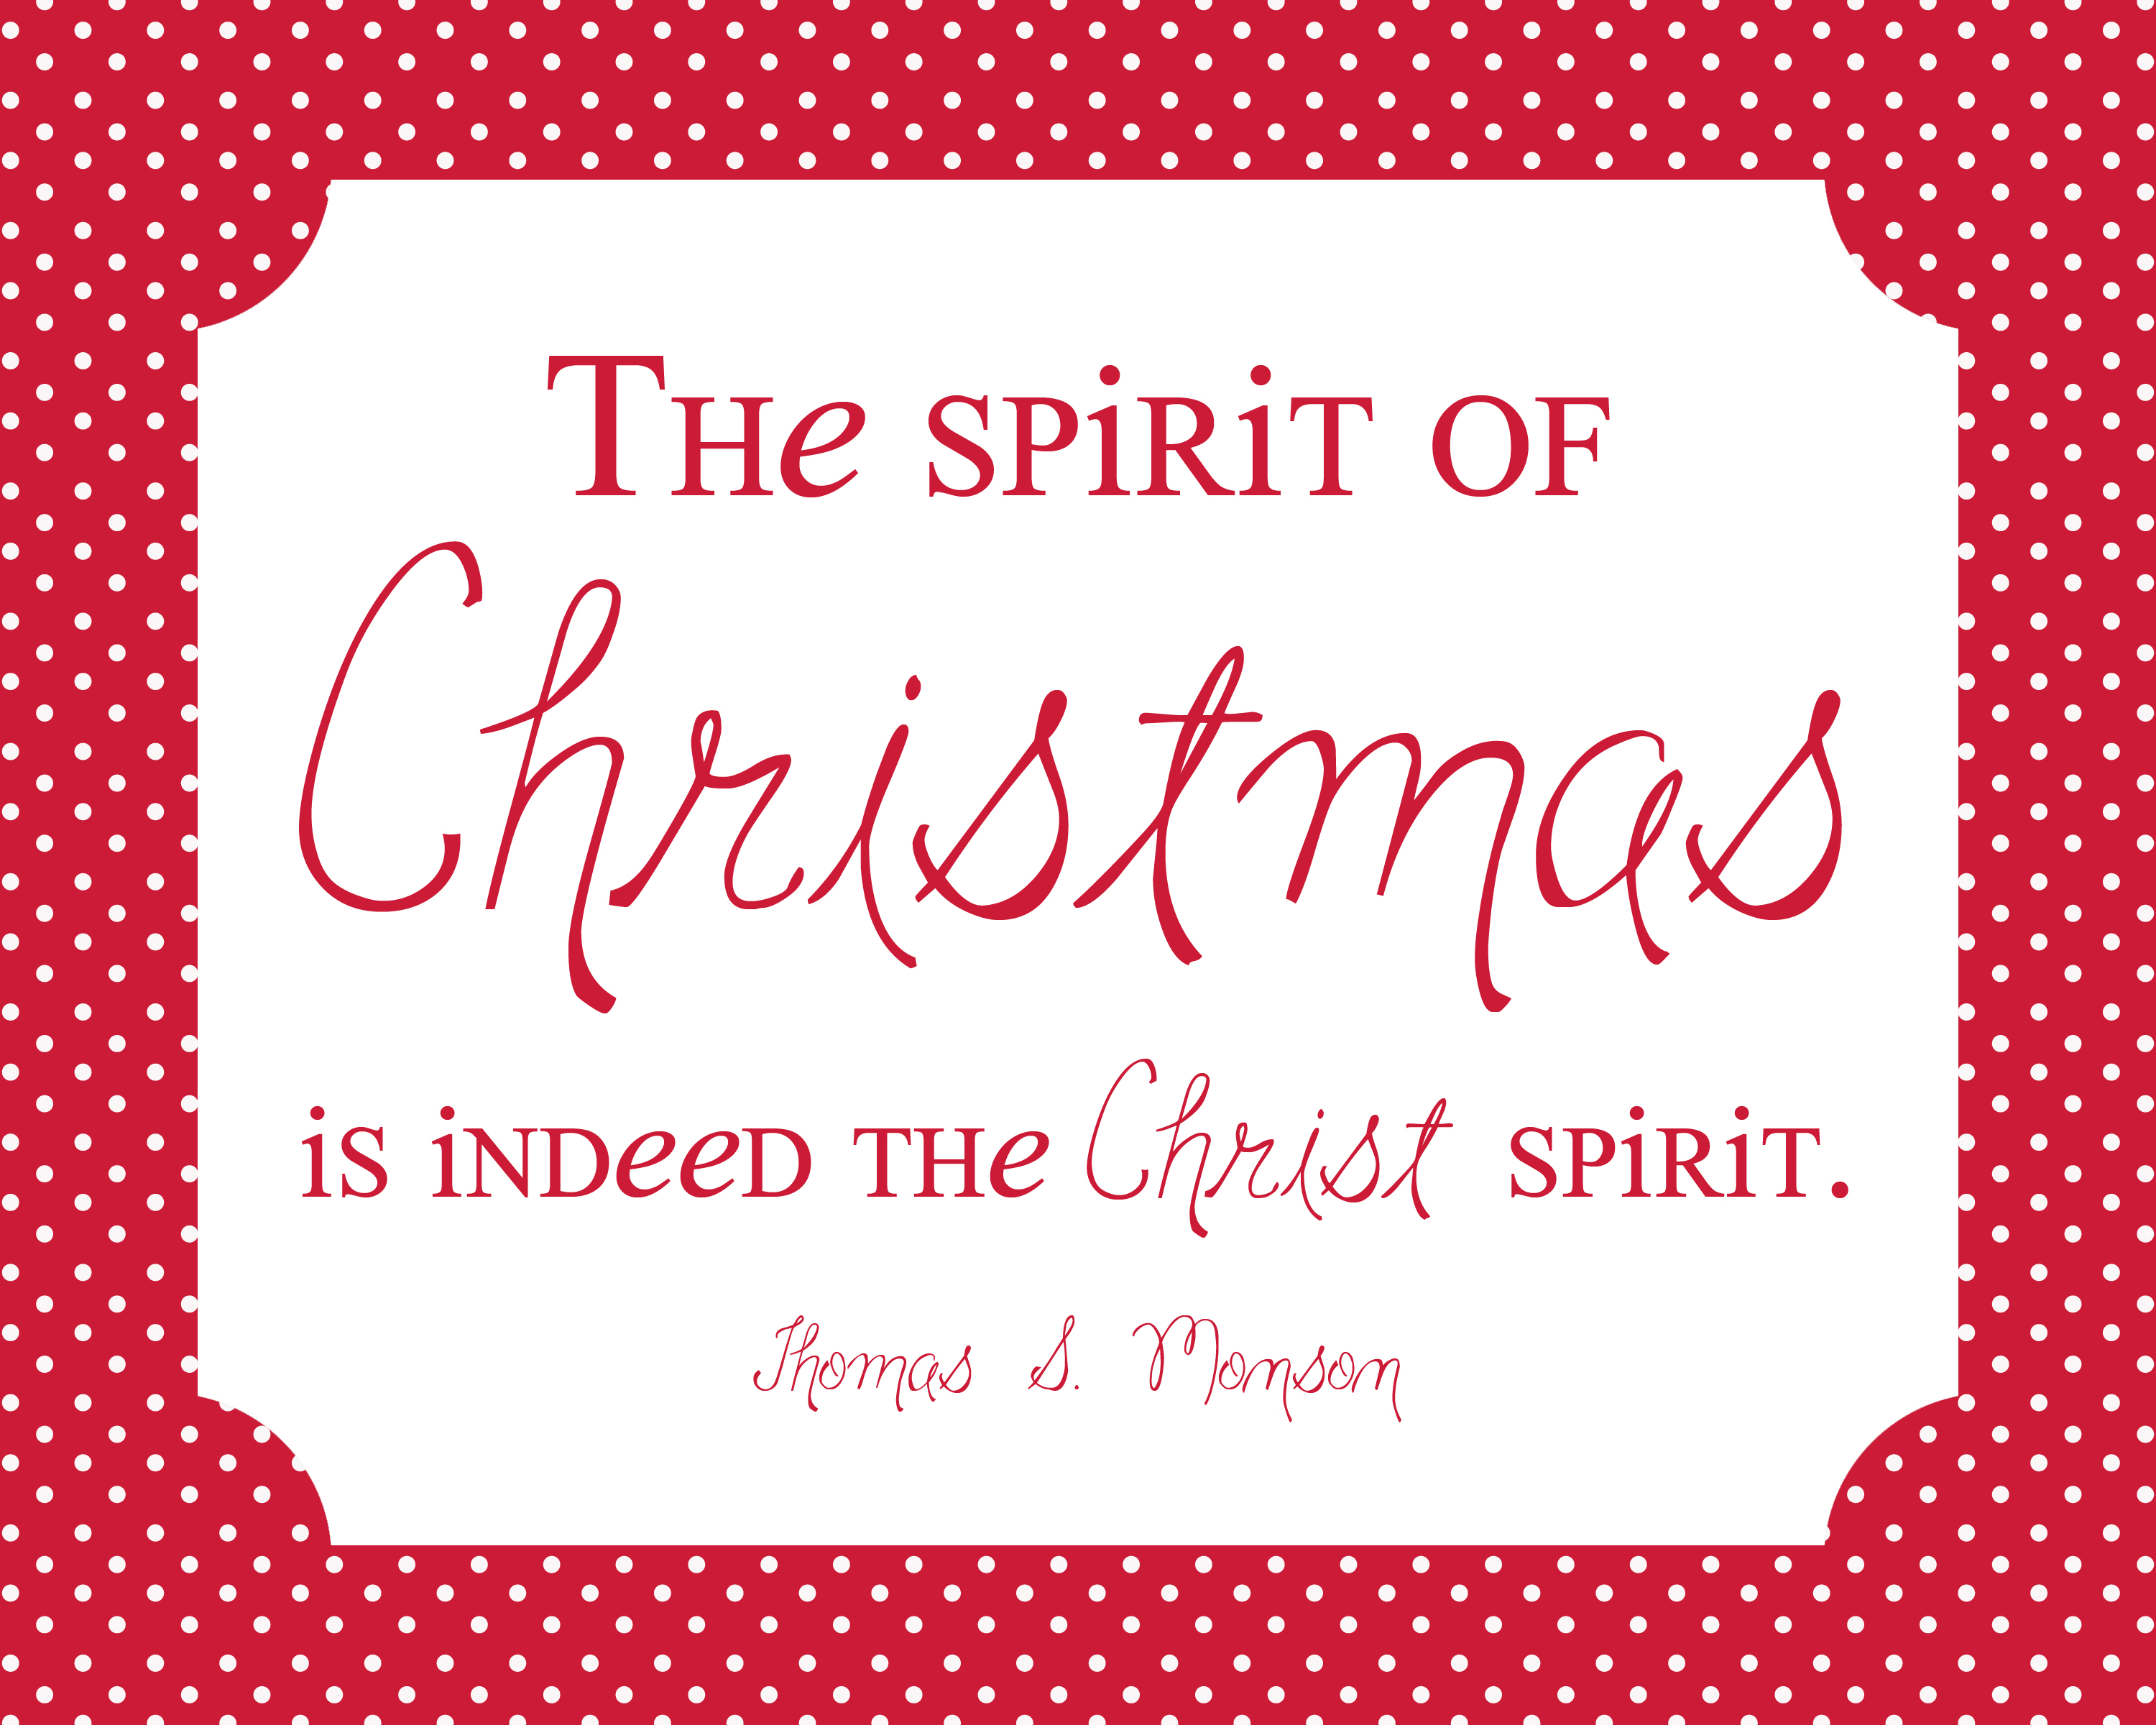 Quotes For Christmas 125 Impressive Christmas Quotes And Sayings With Beautiful Images